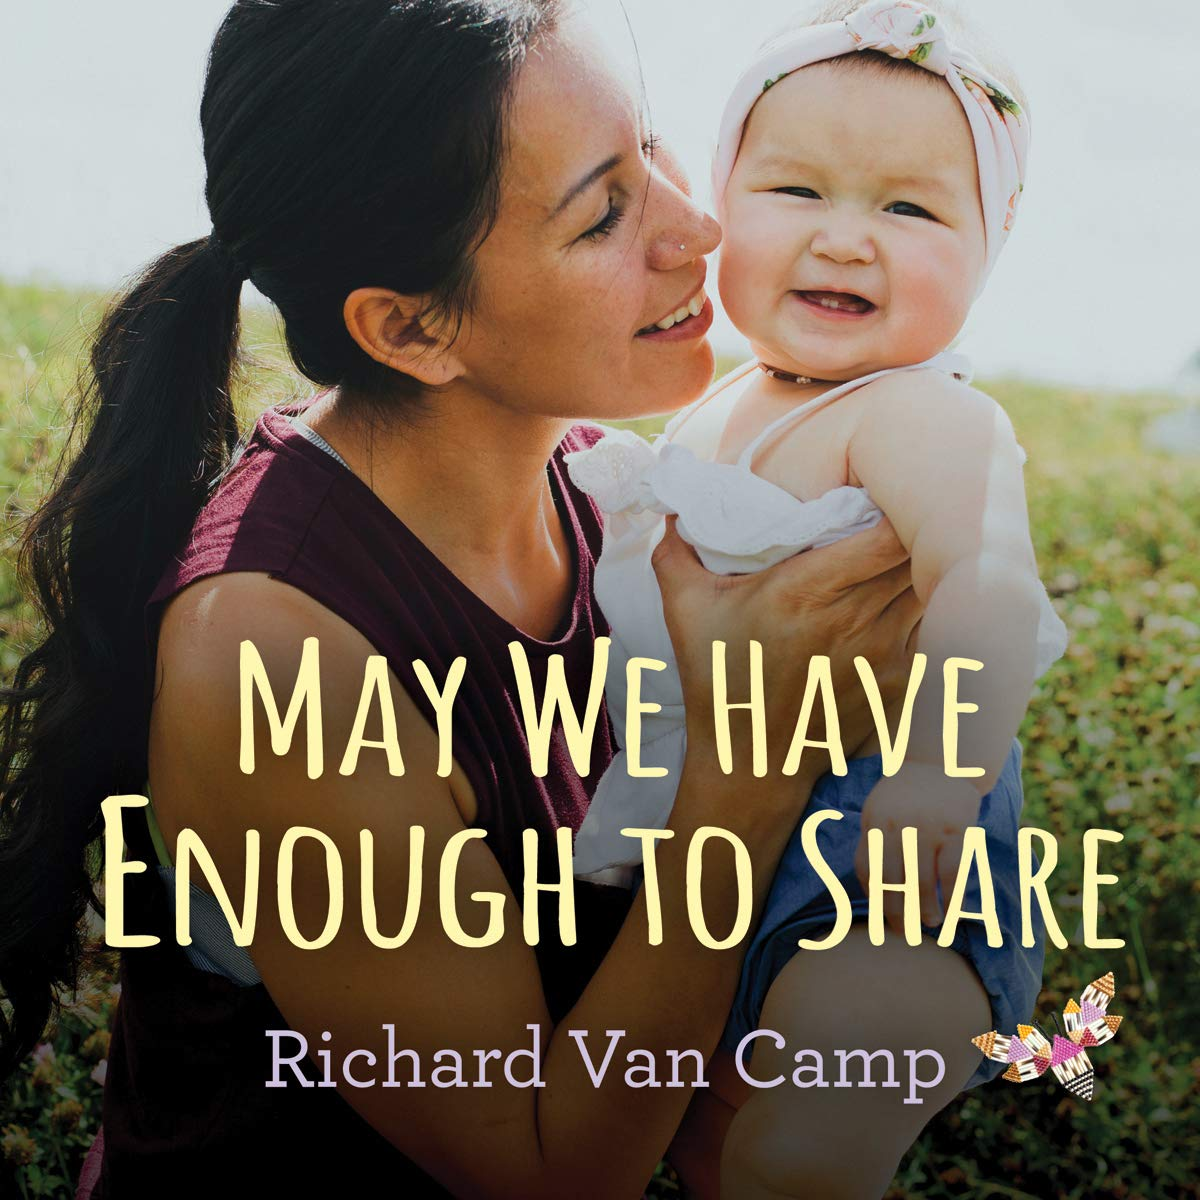 May We Have Enough to Share: Van Camp, Richard: 9781459816244: Amazon.com: Books